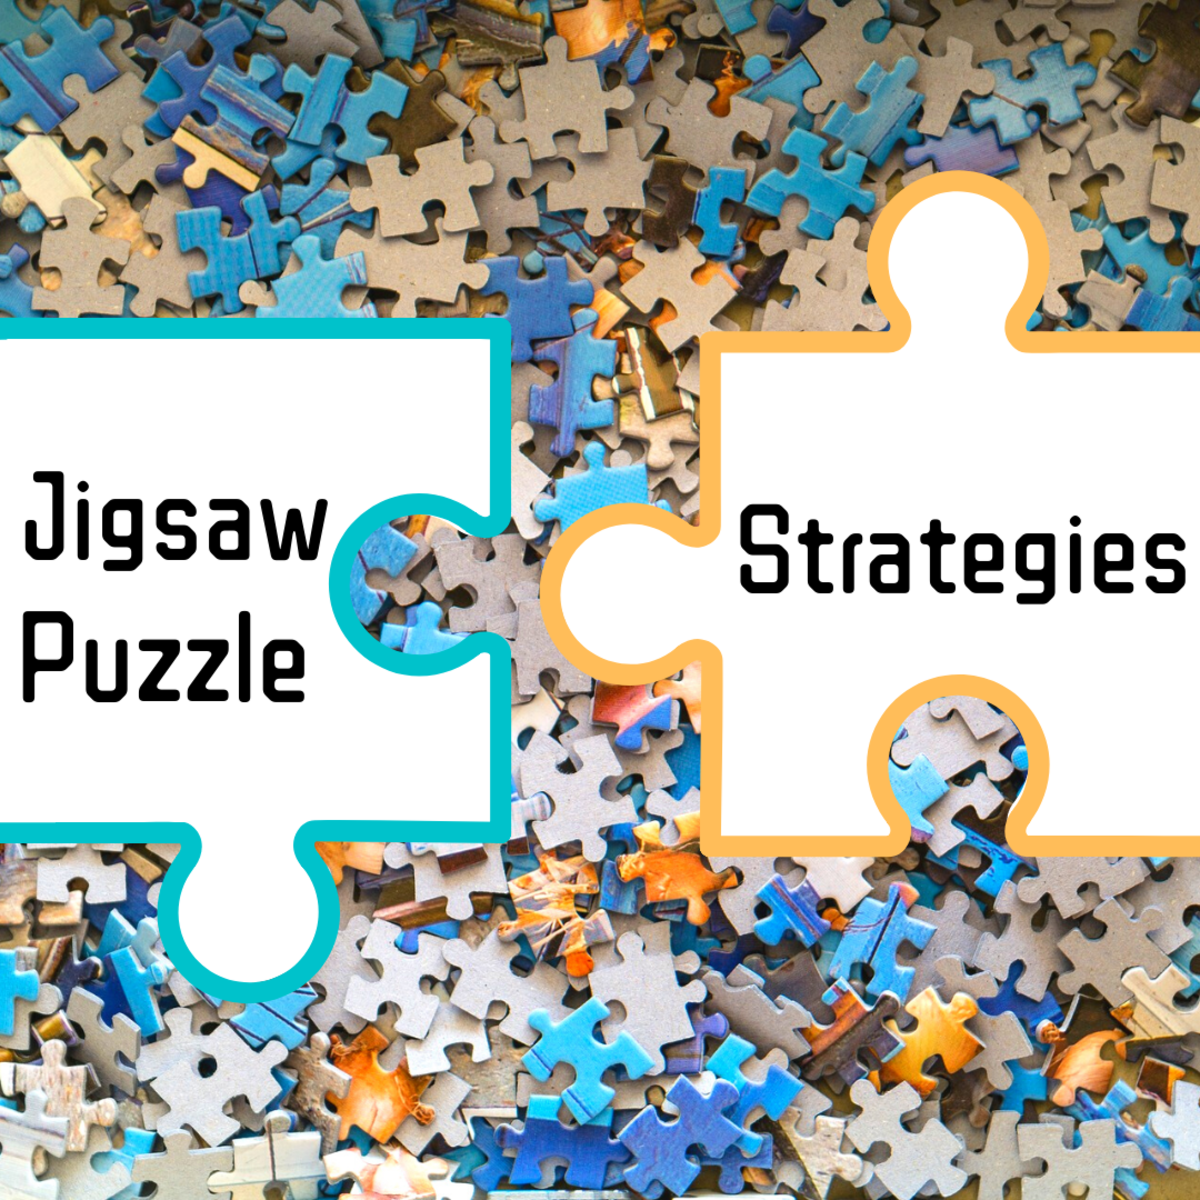 Find some strategy tips for puzzling like a pro!